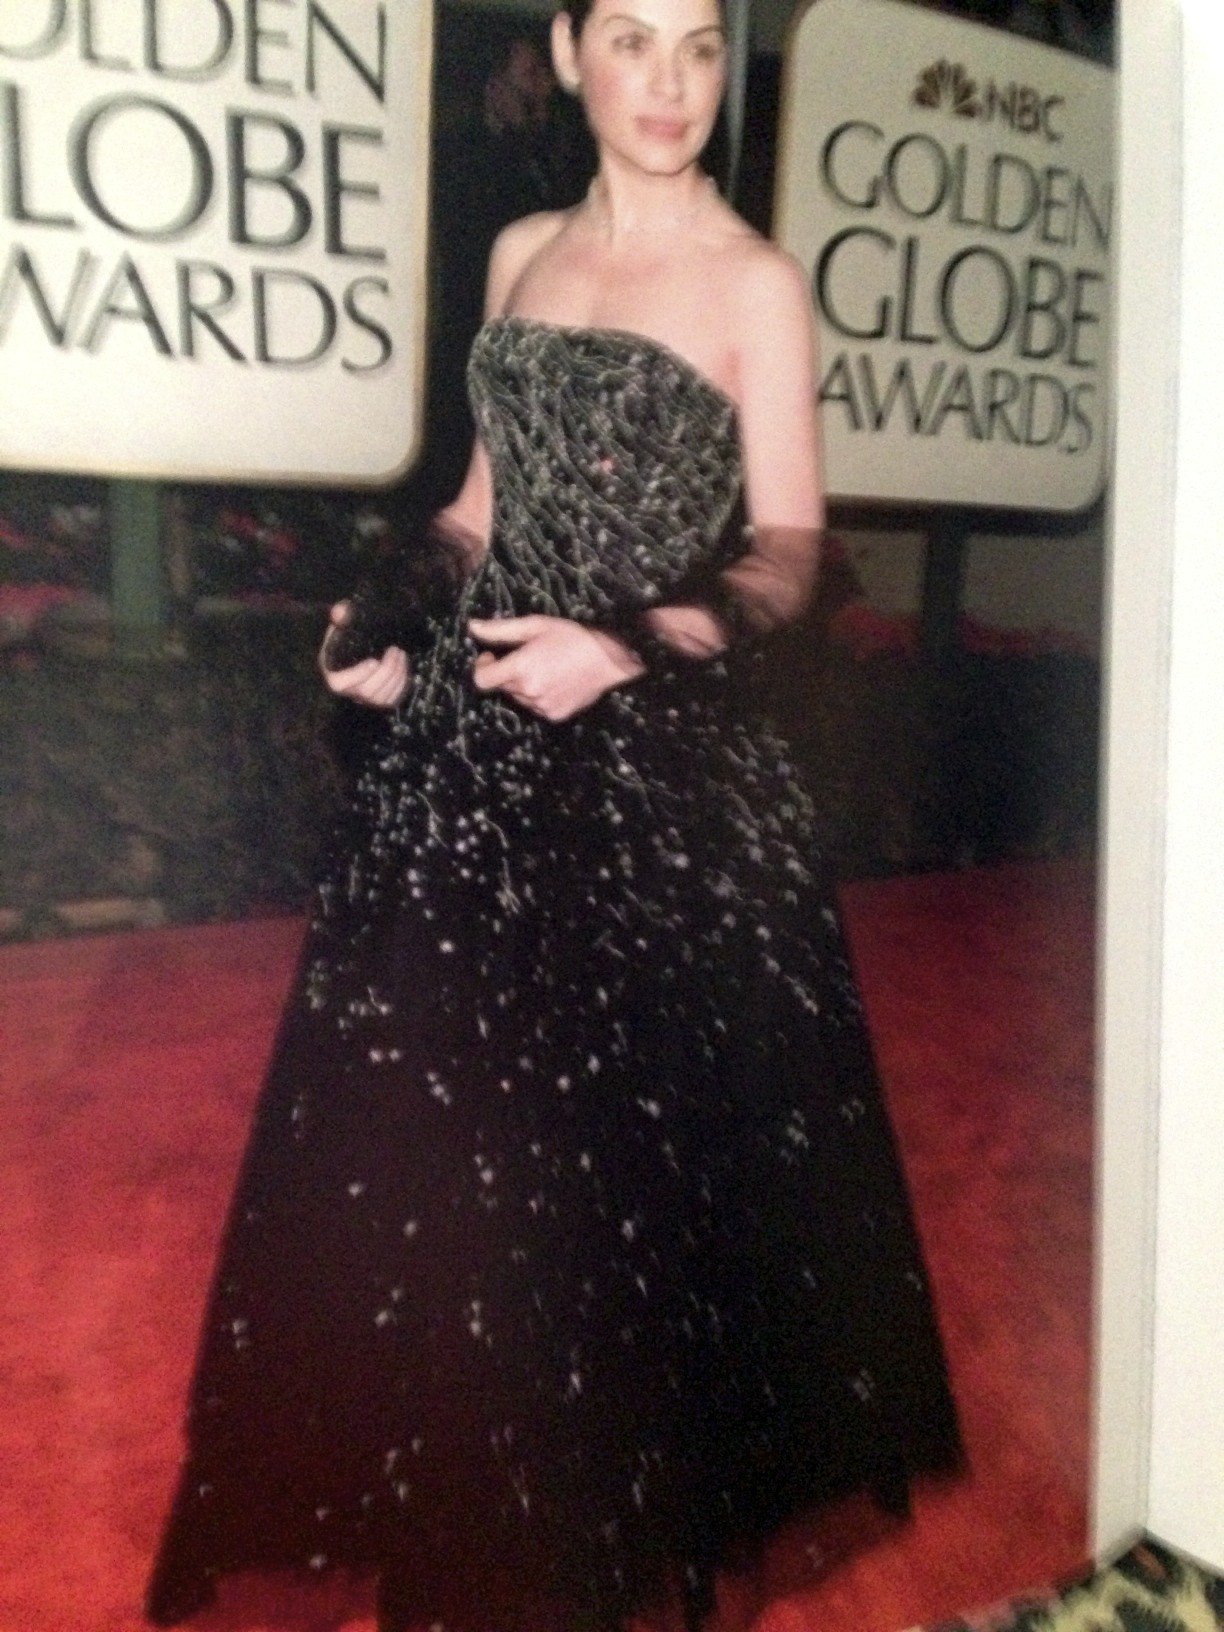 Julianna Margulies in Oscar de la Renta